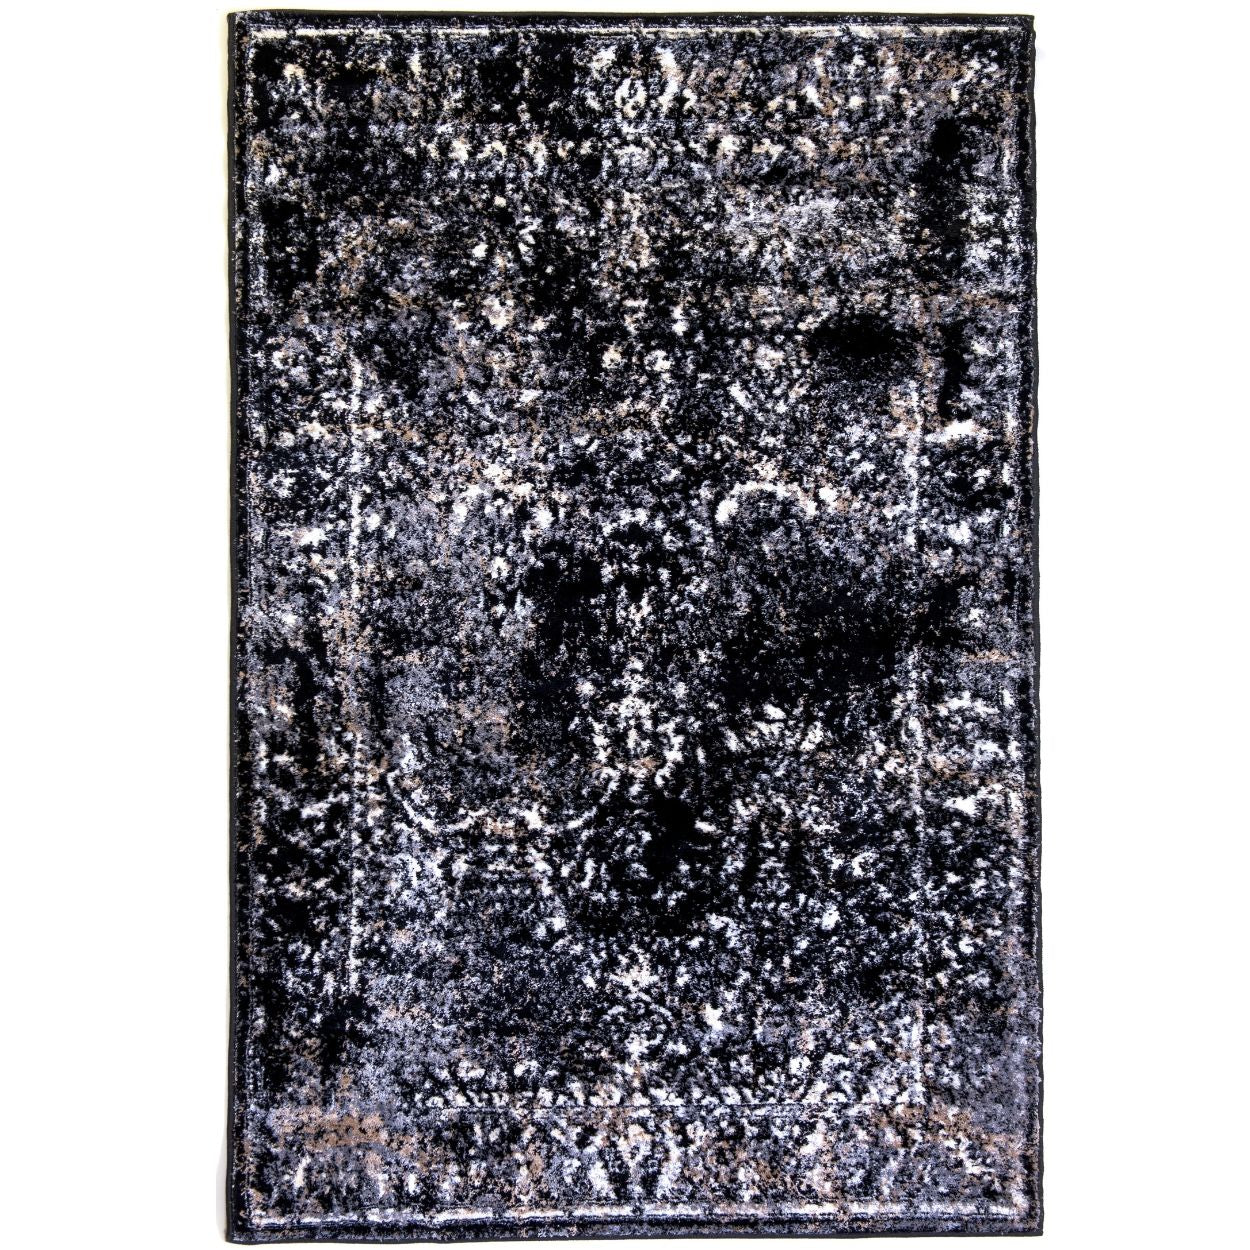 Rug Windsor Black Grey/Beige - 80 x 120cm